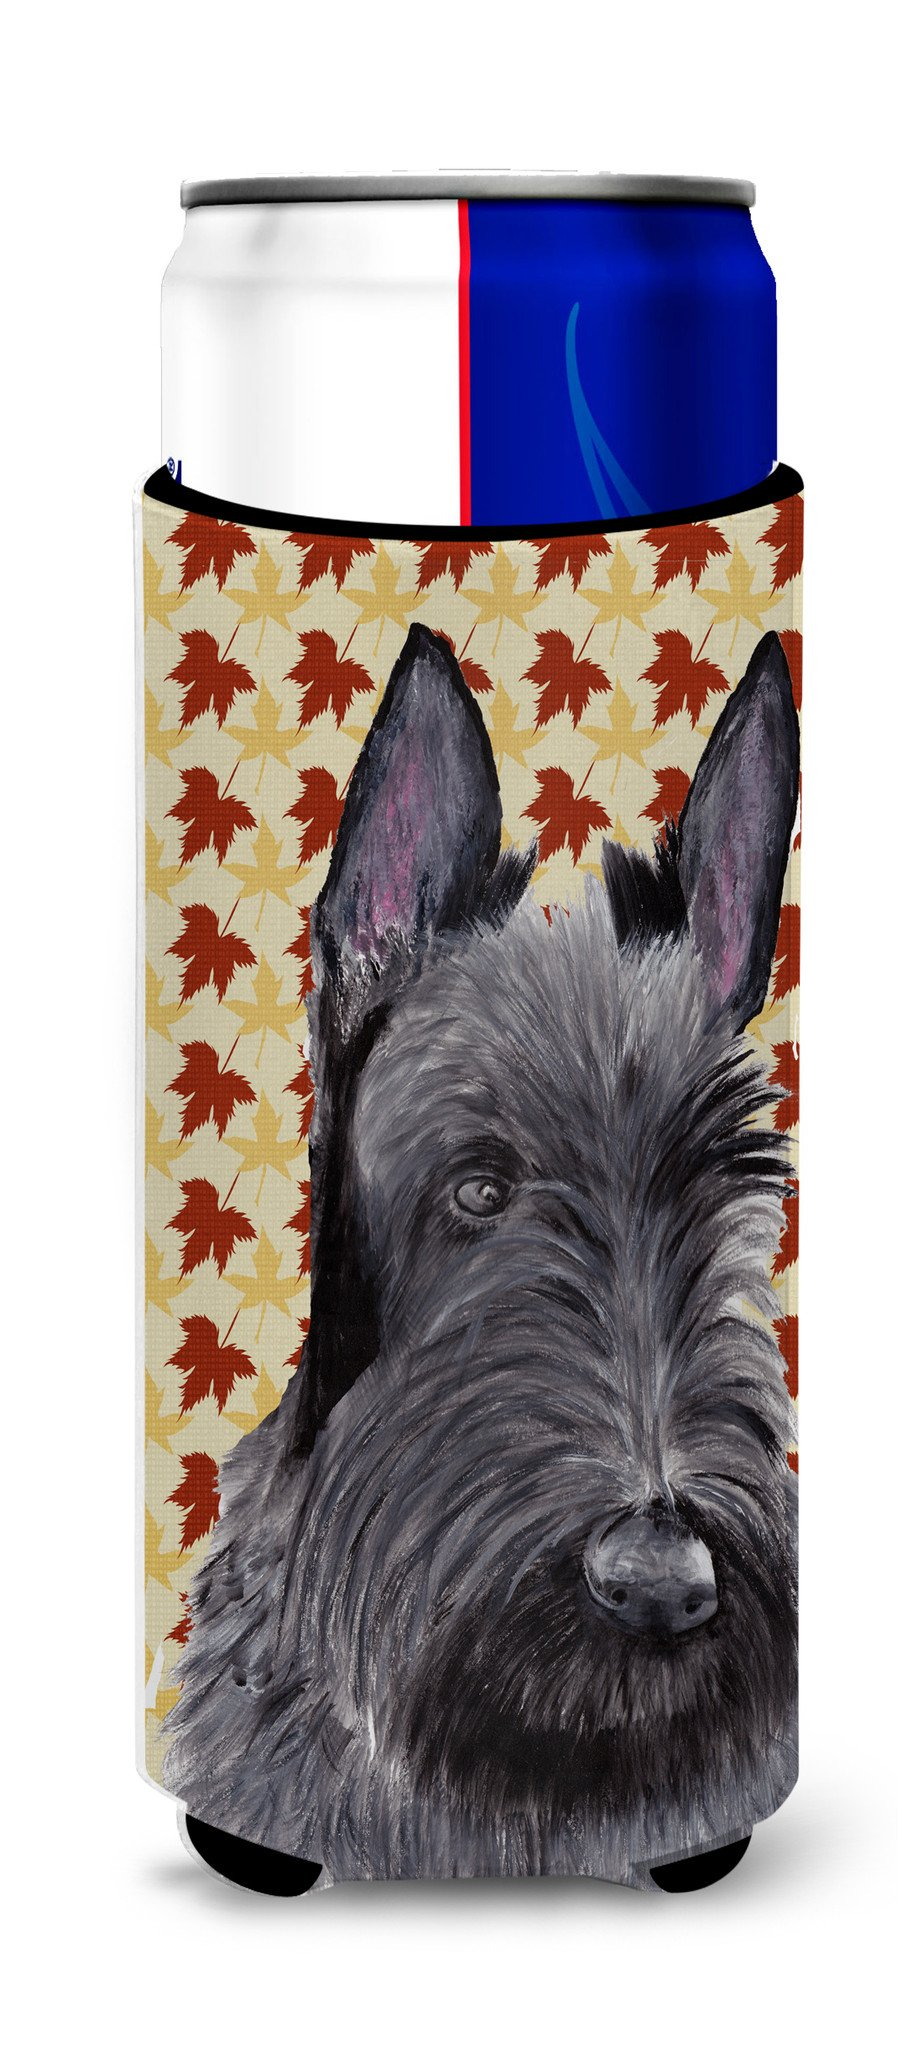 Scottish Terrier Fall Leaves Portrait Ultra Beverage Insulators for slim cans SC9226MUK by Caroline's Treasures